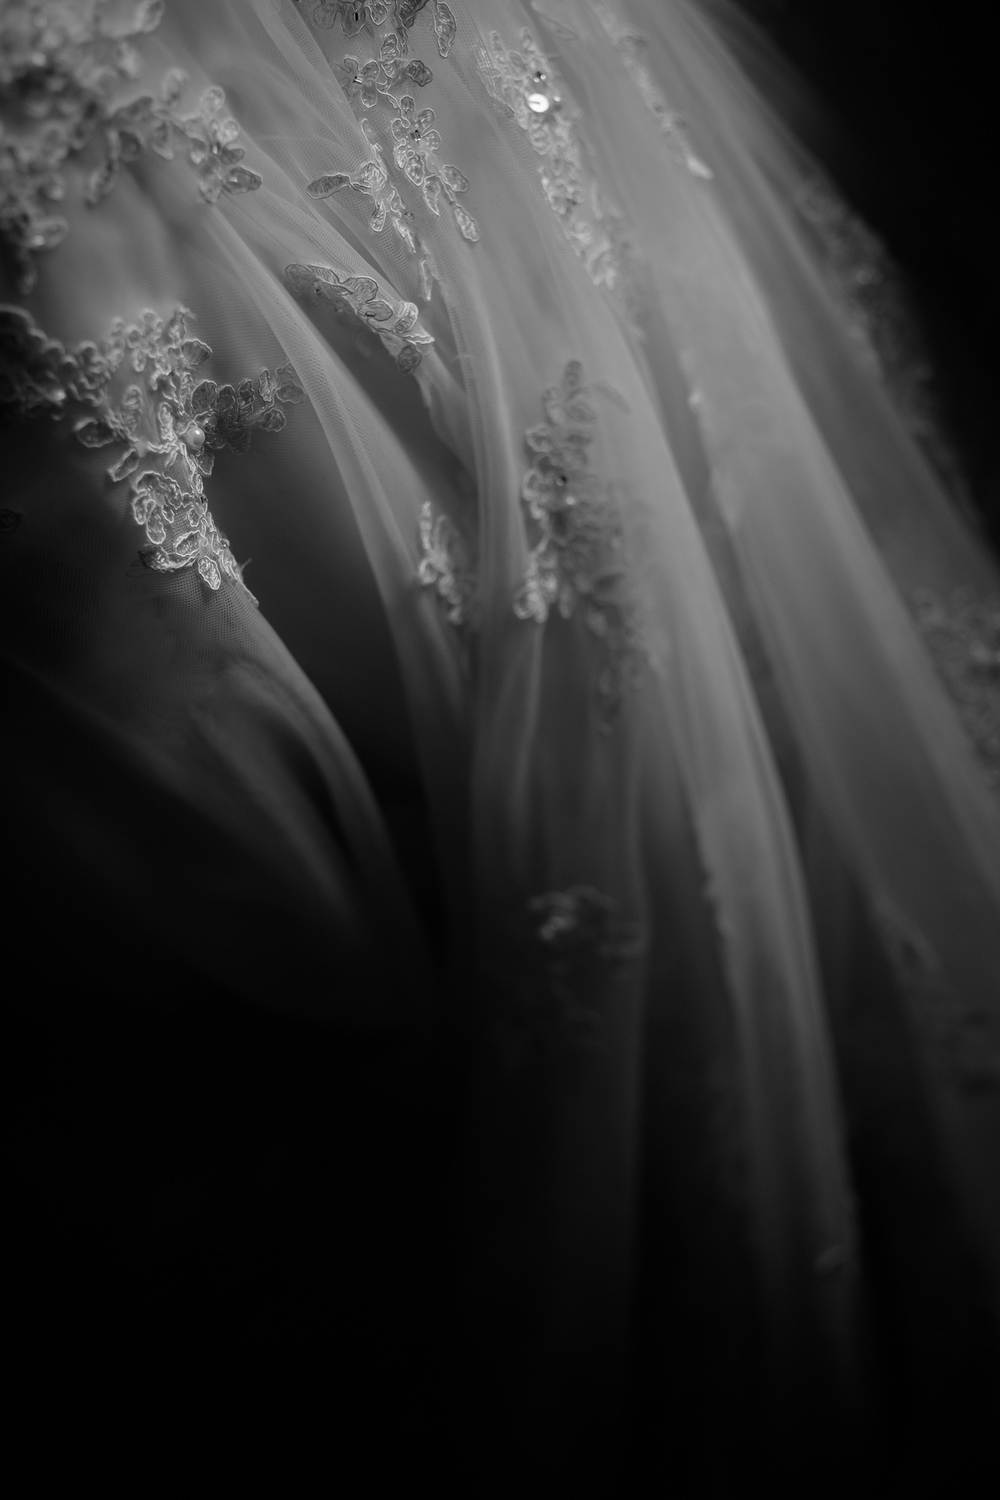 A black and white detail photograph of Jennifer's wedding dress from her Toronto wedding.